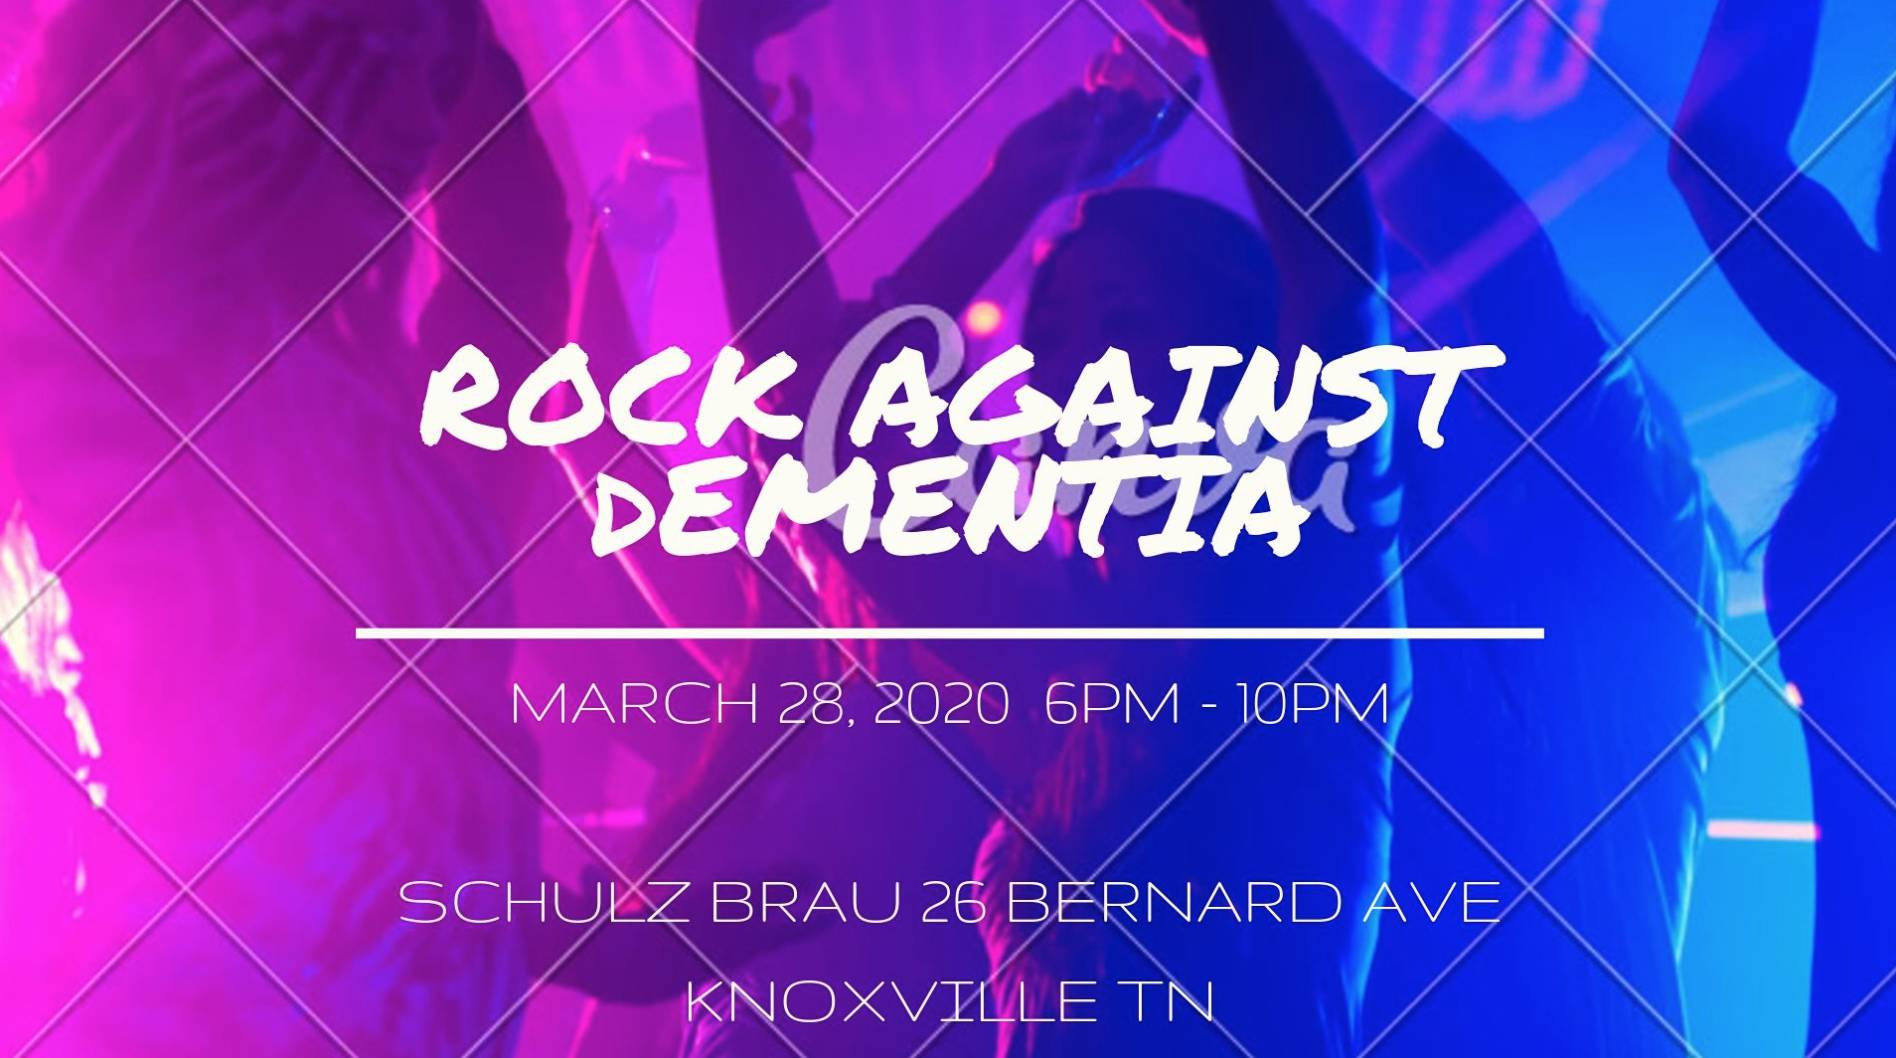 Knoxville Rock Against Dementia